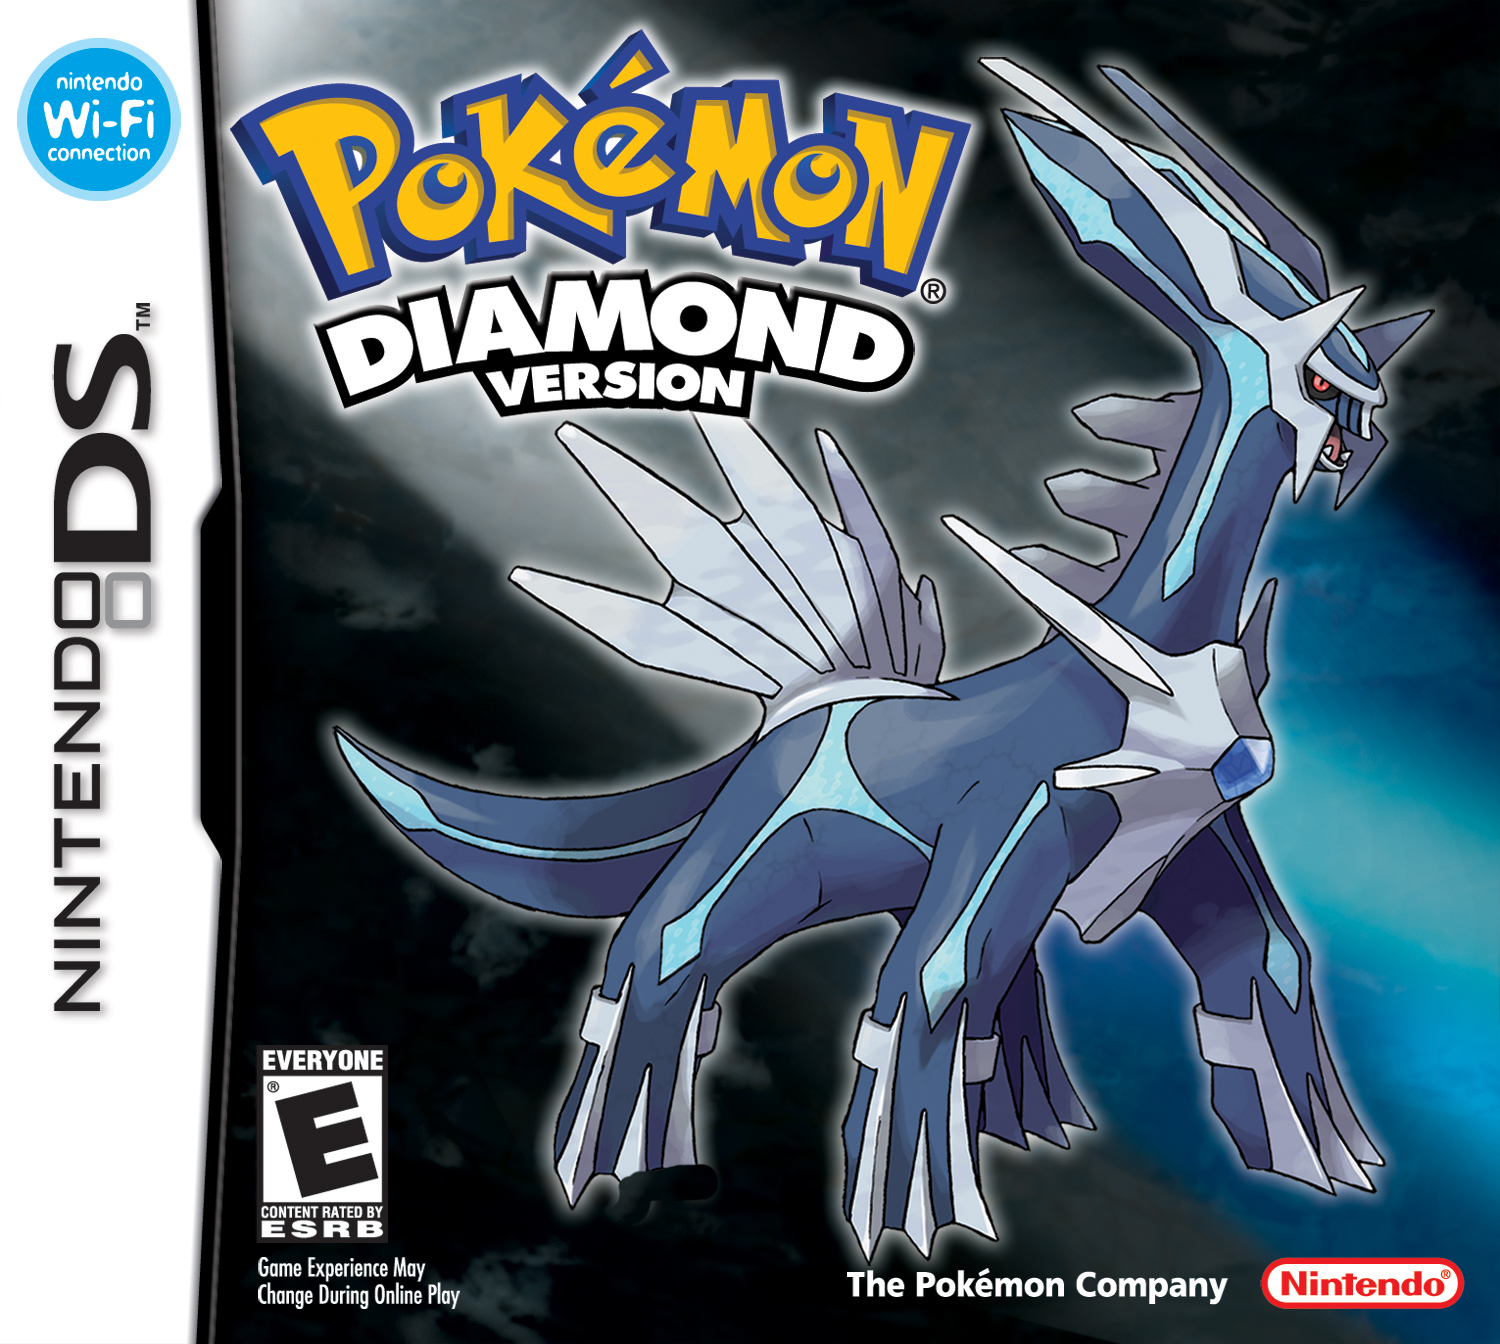 Pokemon-diamond-version